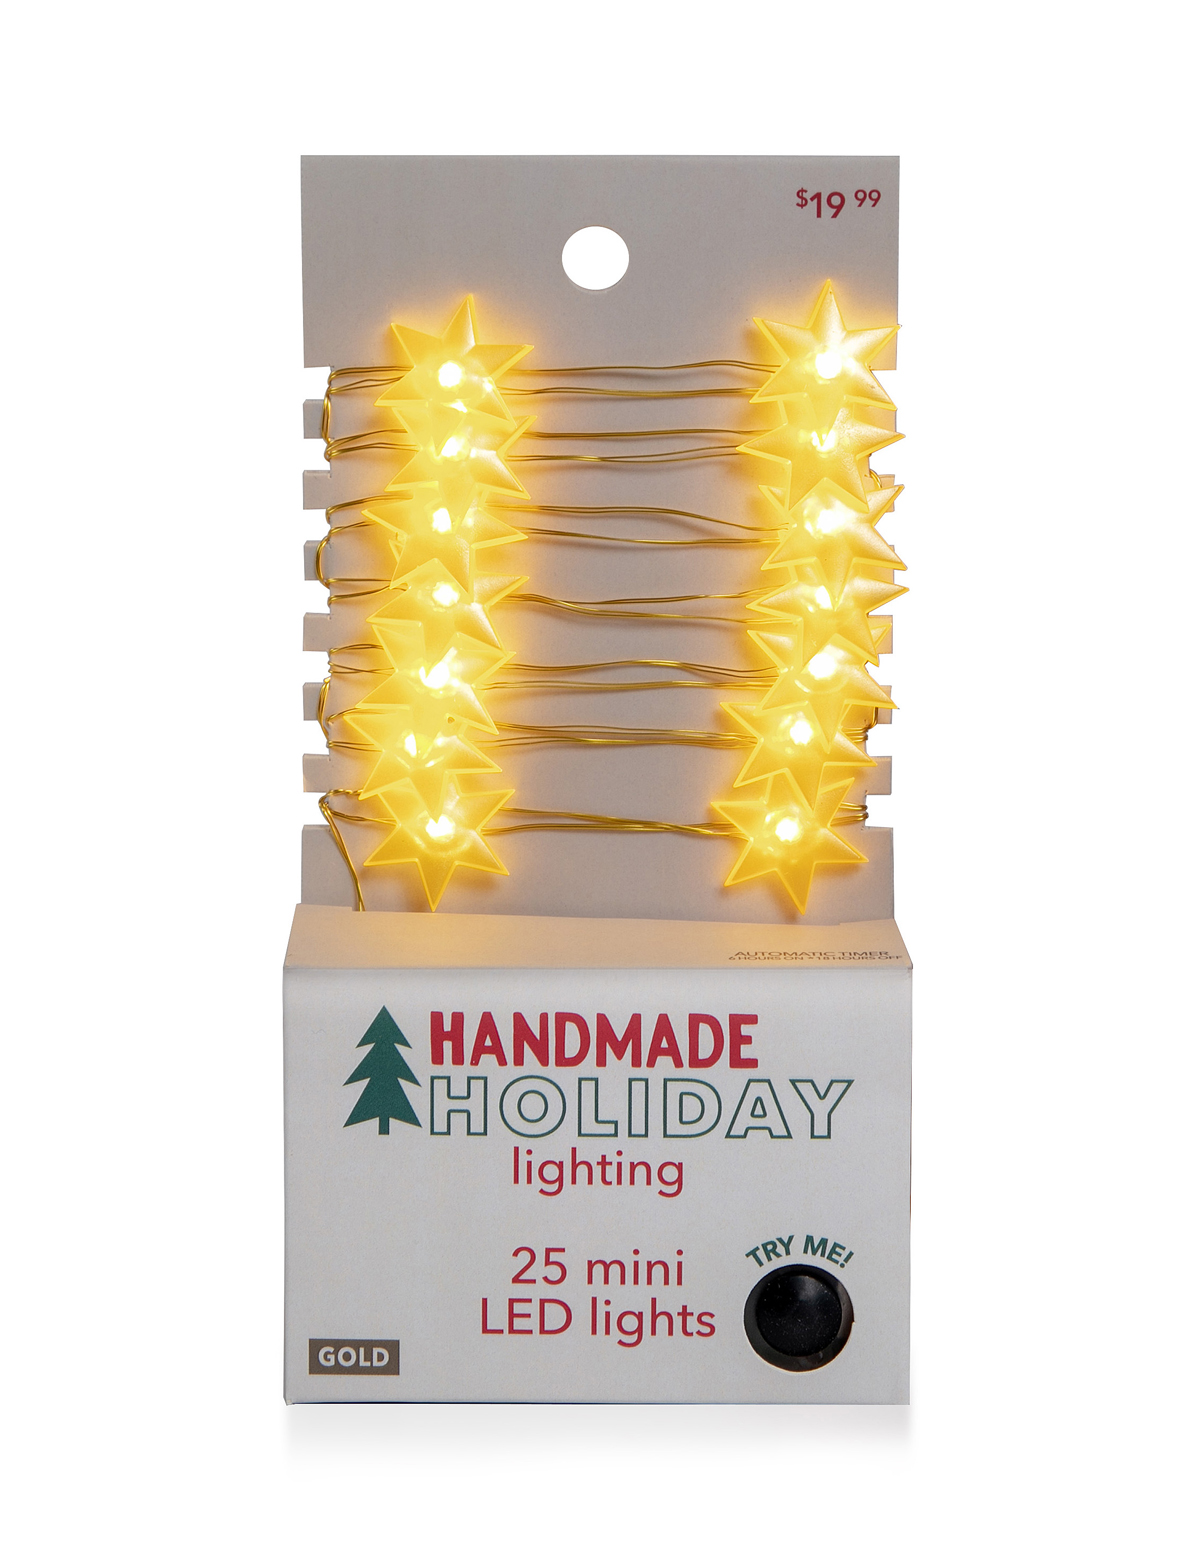 Handmade Holiday Lighting Christmas Hexagonal Star LED Gold Light Strand